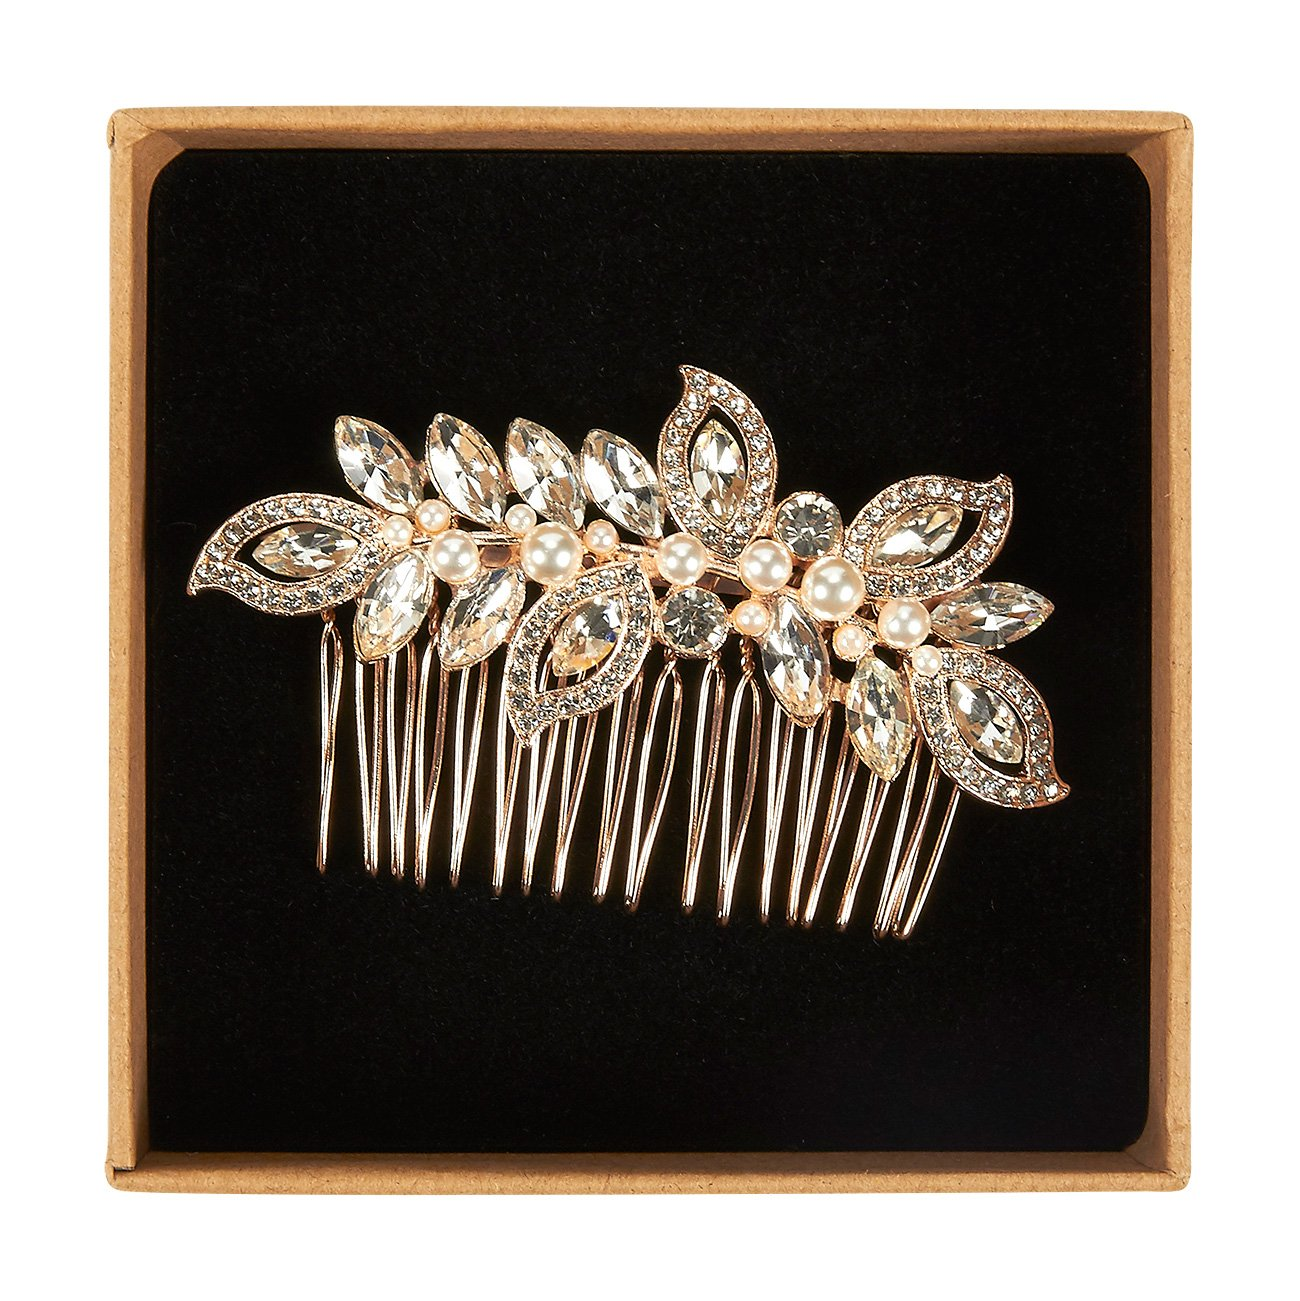 Bridal Hair Comb - Decorative Rhinestone Wedding Comb for Bridesmaids, Engagement Parties, Bridal Showers, Rose Gold - 3.5 x 0.39 x 2.13 Inches by Juvale